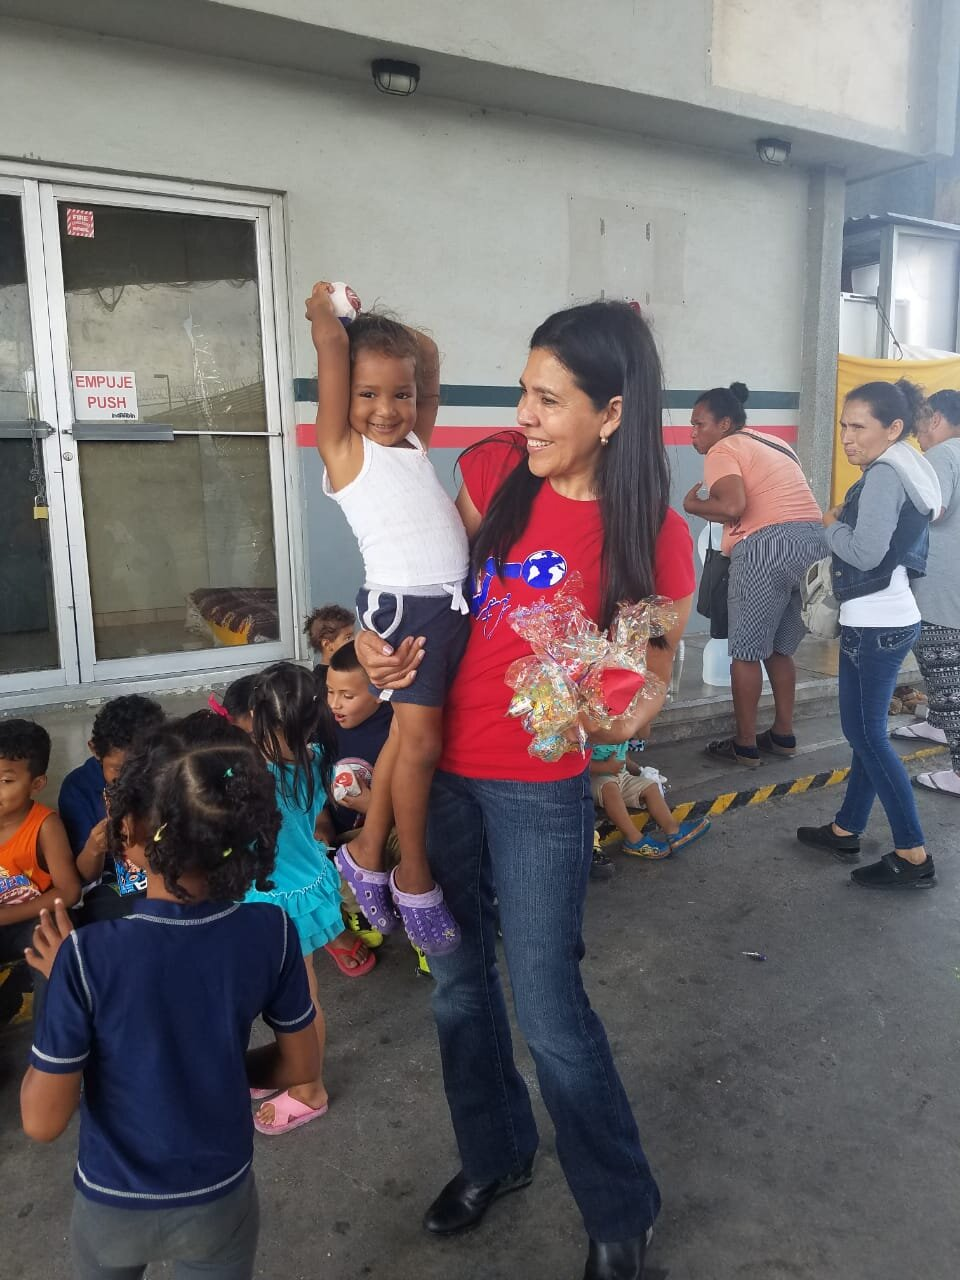 Gladis with children returned by the Remain in Mexico policy.